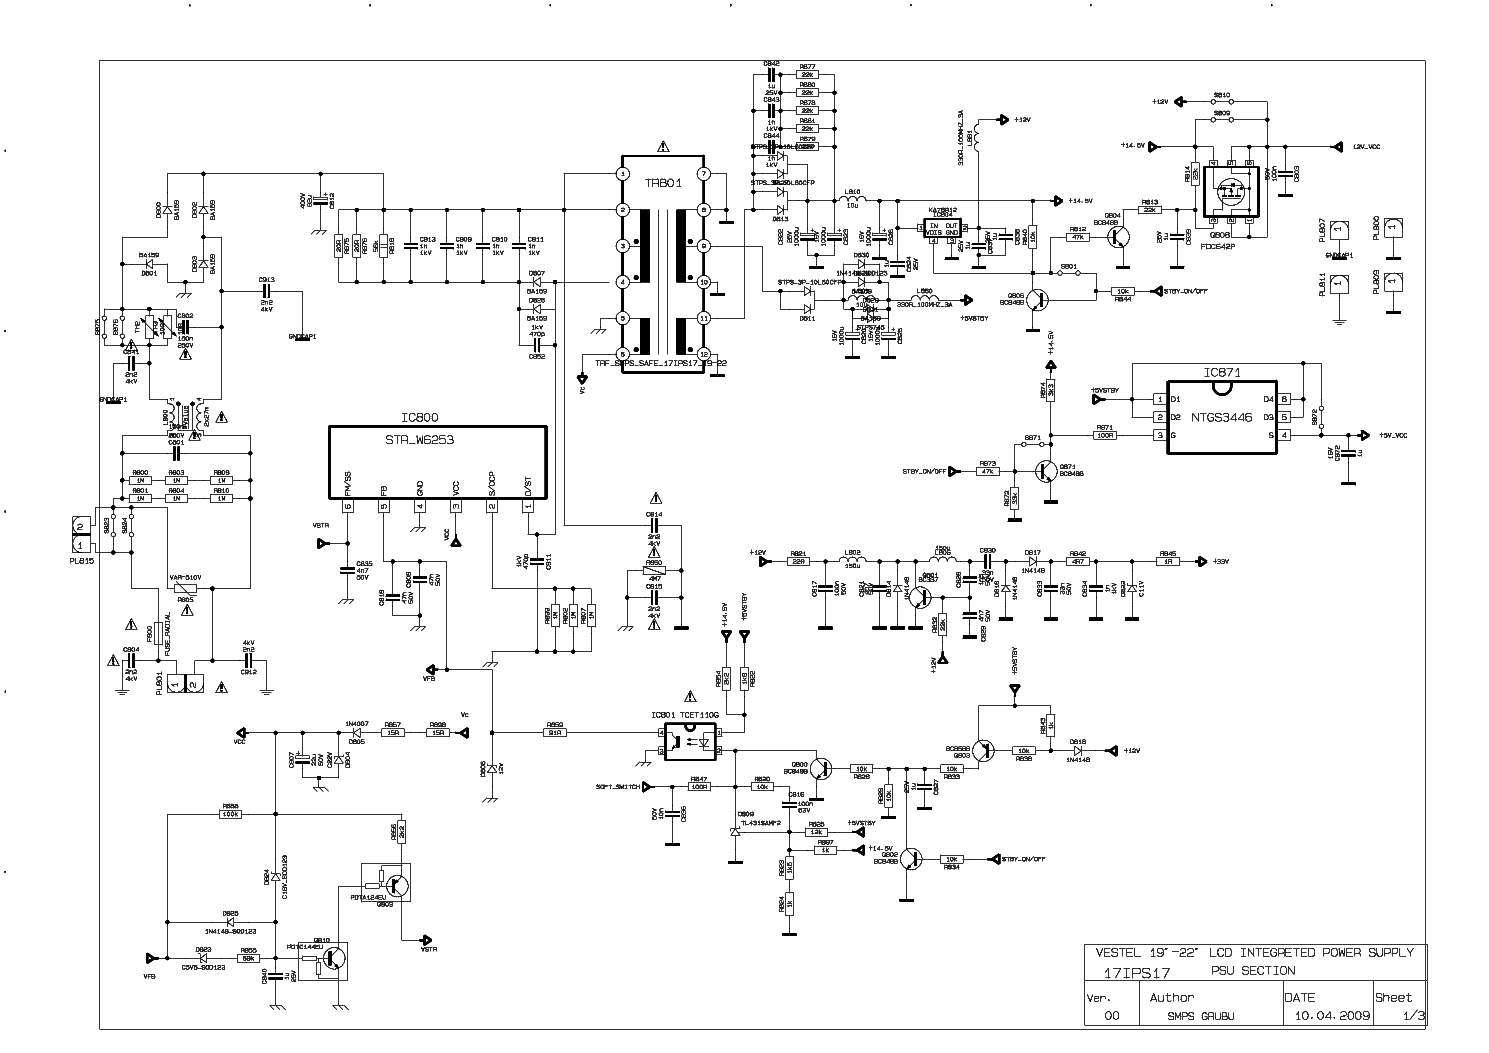 Kubota Kx1613 Wiring Diagram All Kind Of Diagrams Radio Electrical Schematics For Kx161 3 Rh Desirephotozru Cf Tractor